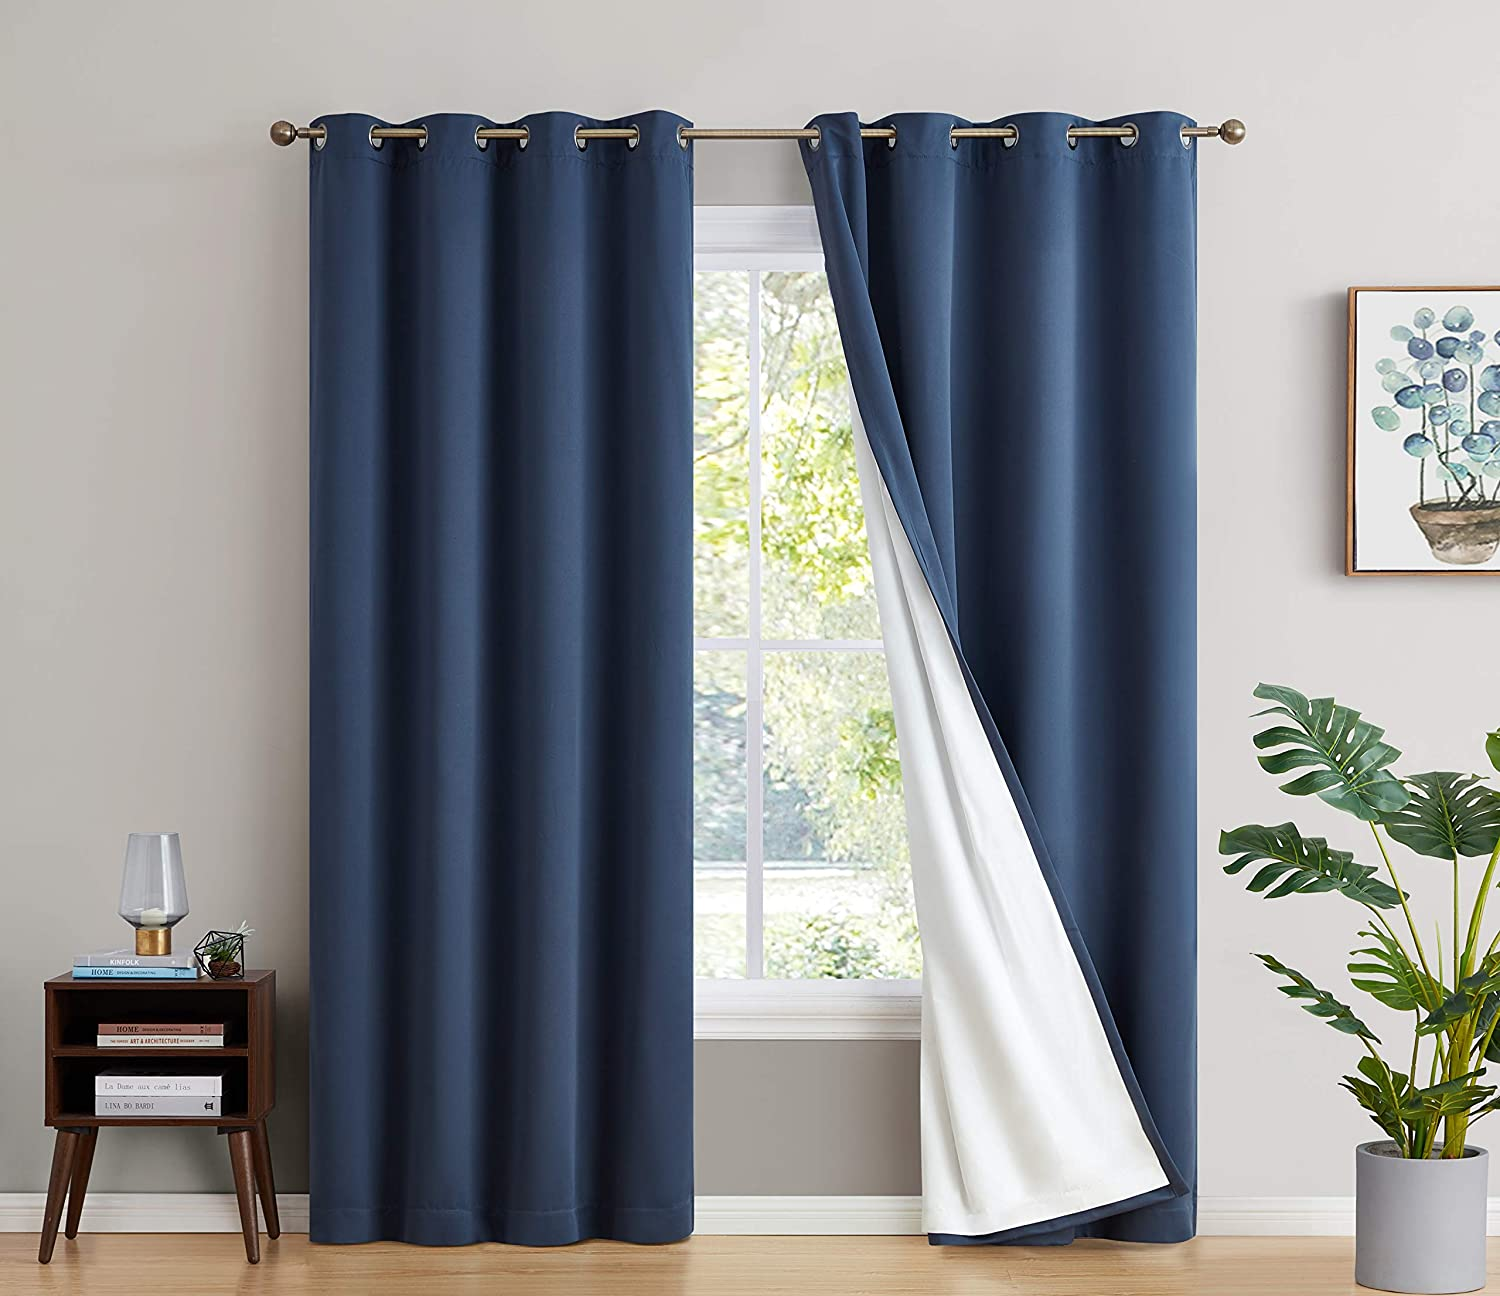 Max 89% OFF HLC.ME 100% Complete Blackout Lined Thick La Double with Max 58% OFF Drapery